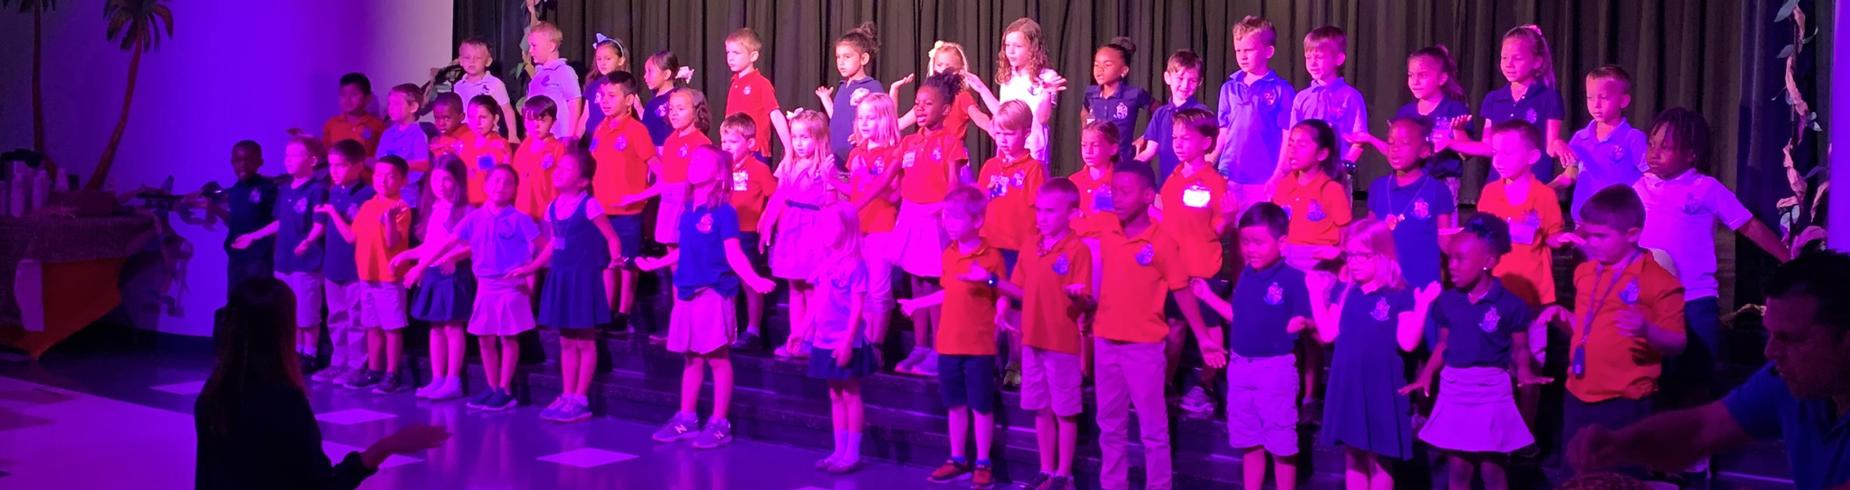 kids singing with purple light